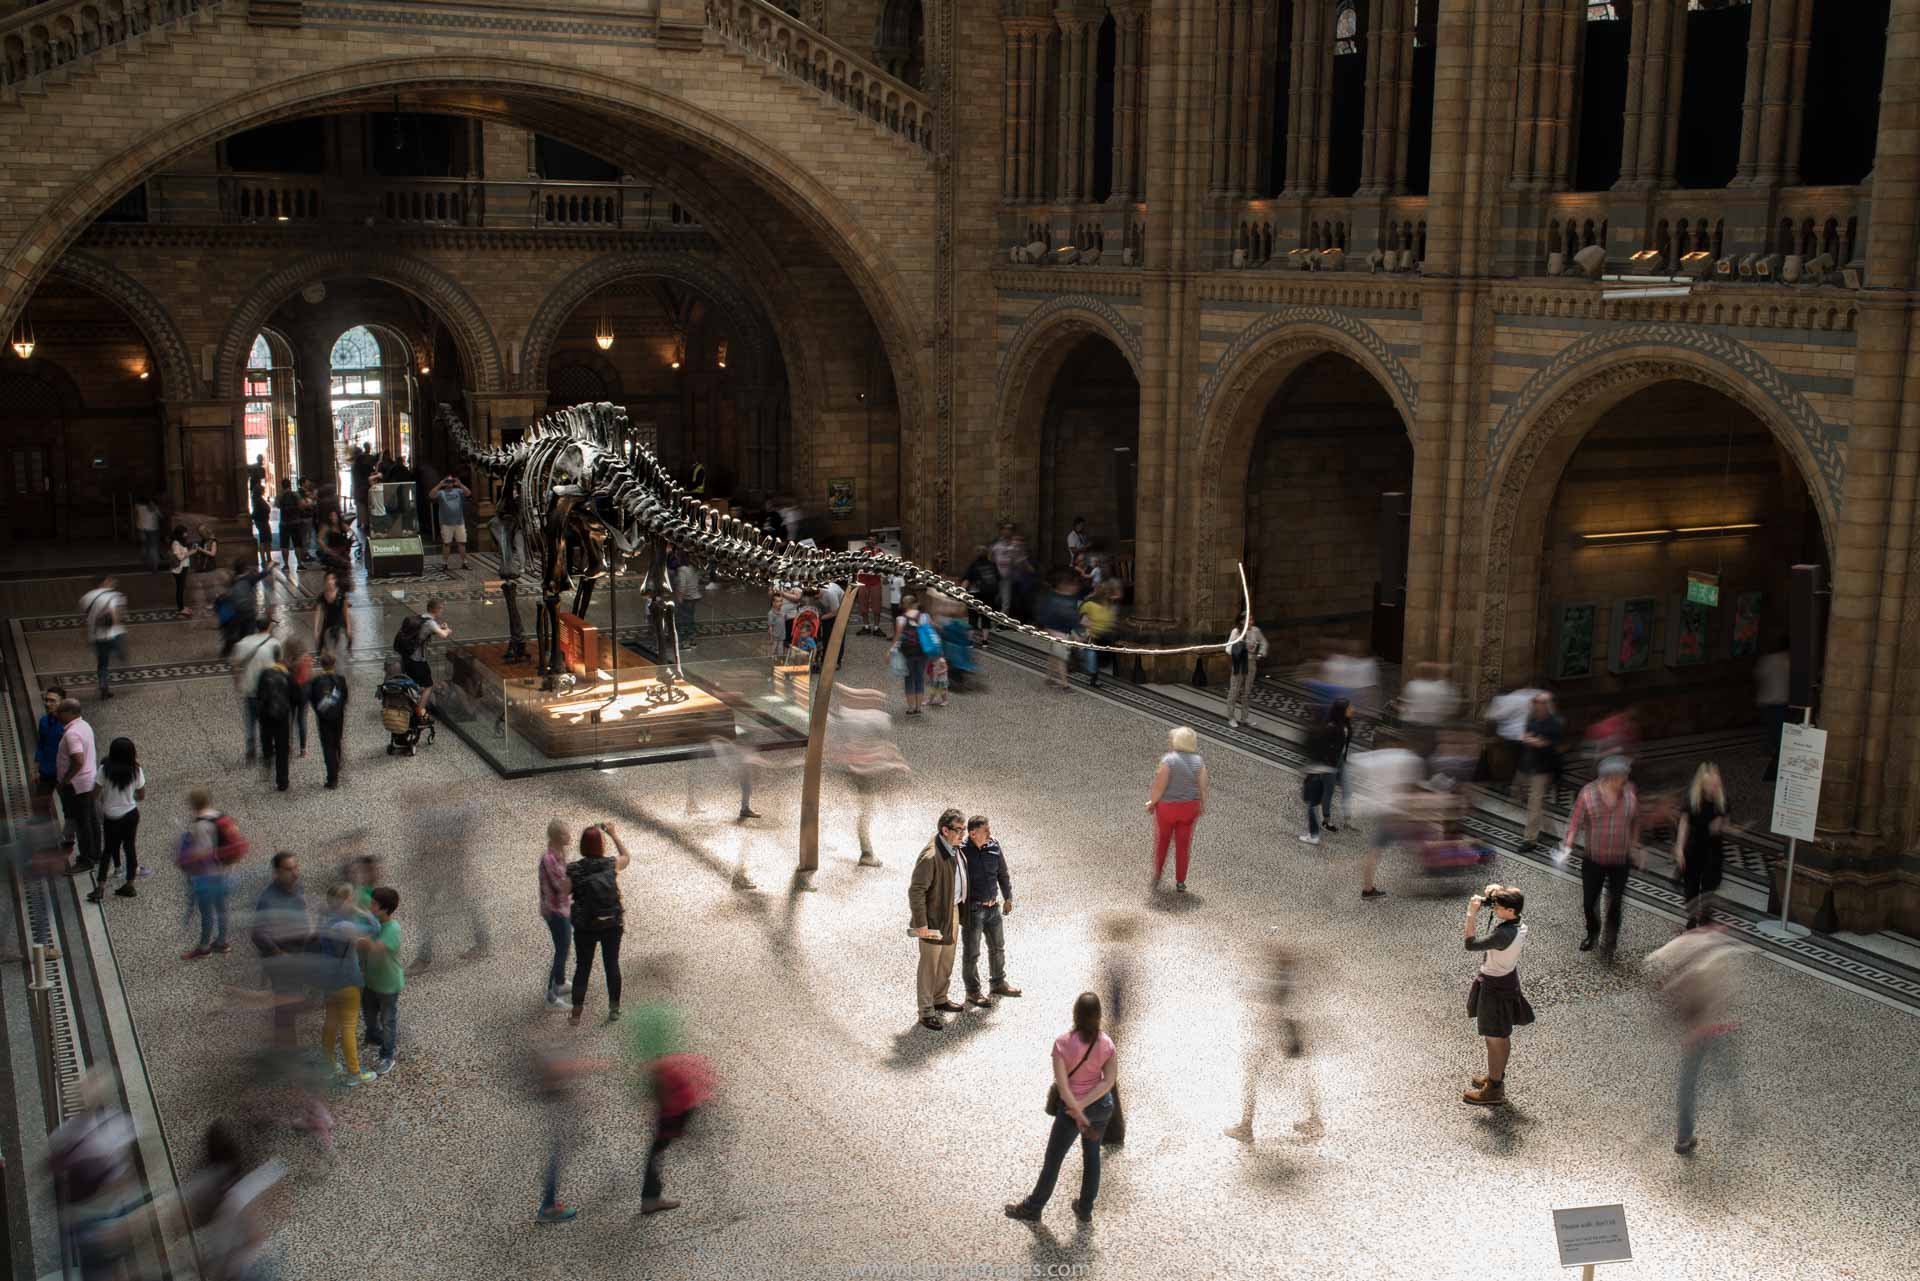 dinosaur's picture, visit in National History Museum, trip to National History Museum